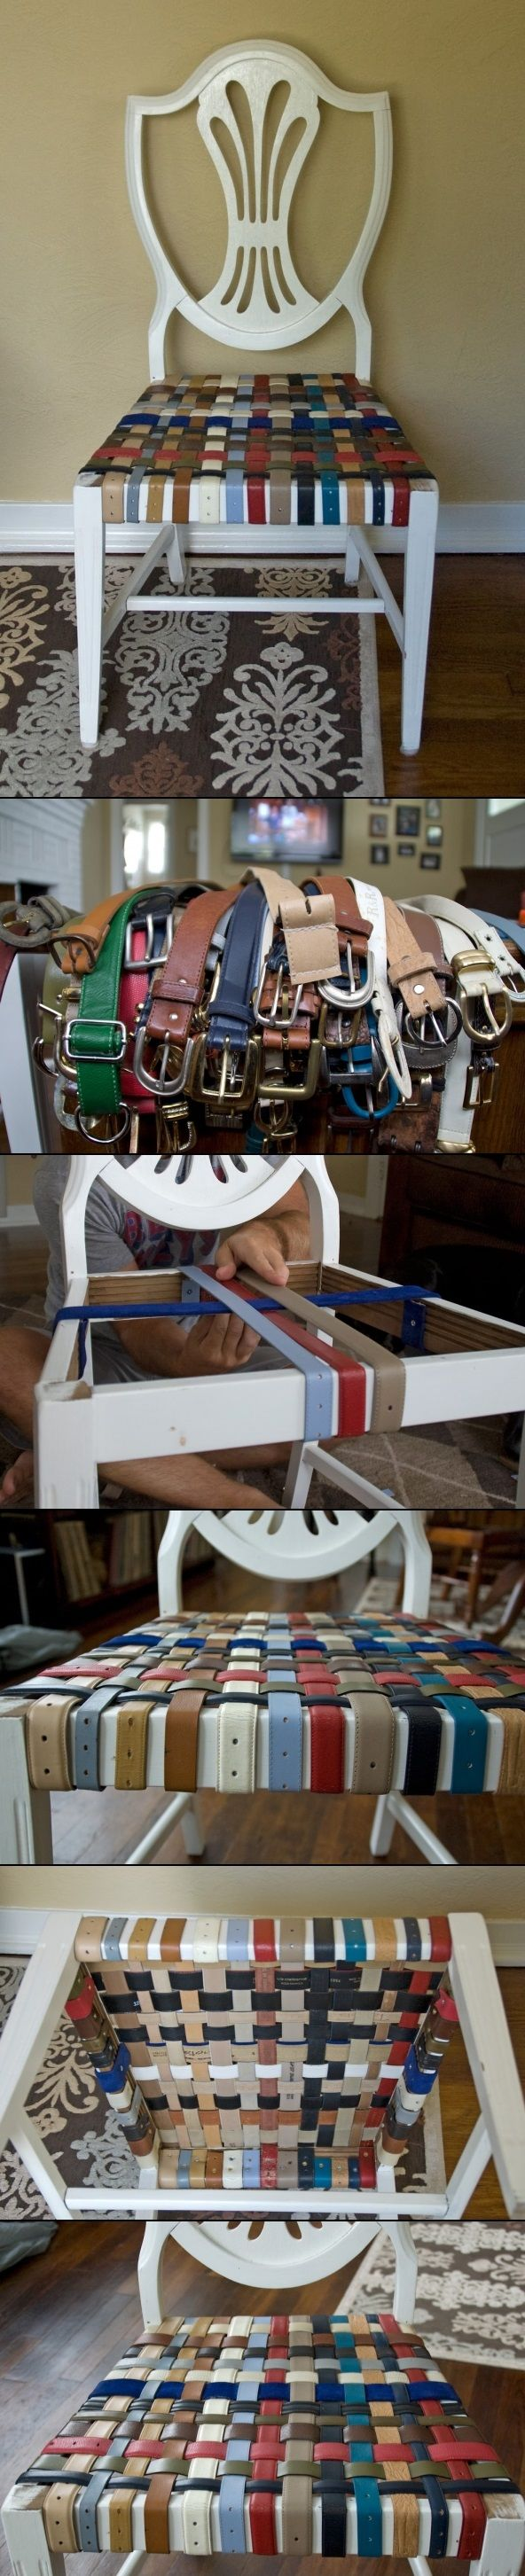 ~omg! way cool! who thought of this? always TONS of belts in thrift stores and have wondered what thrifted belts could be used for (straps for crocheted bags and purses, around piles of books or magazines to use as stools, around stacked pillows to use as floor cushions) but never thought of this~DIY CHAIR RENOVATION WITH BELTS